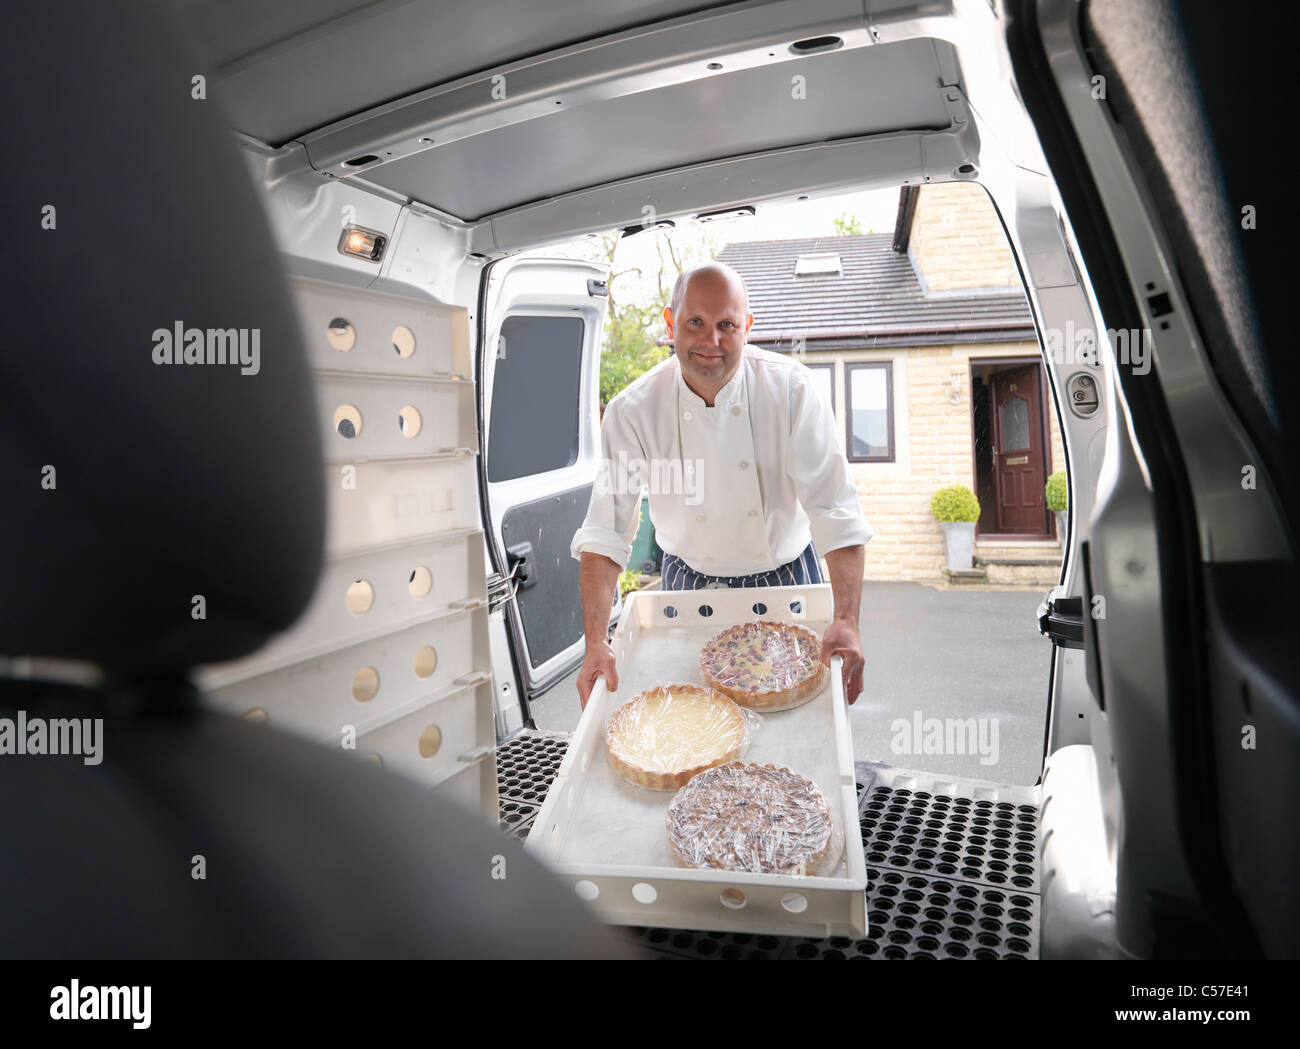 Pastry chef loading cakes into van - Stock Image